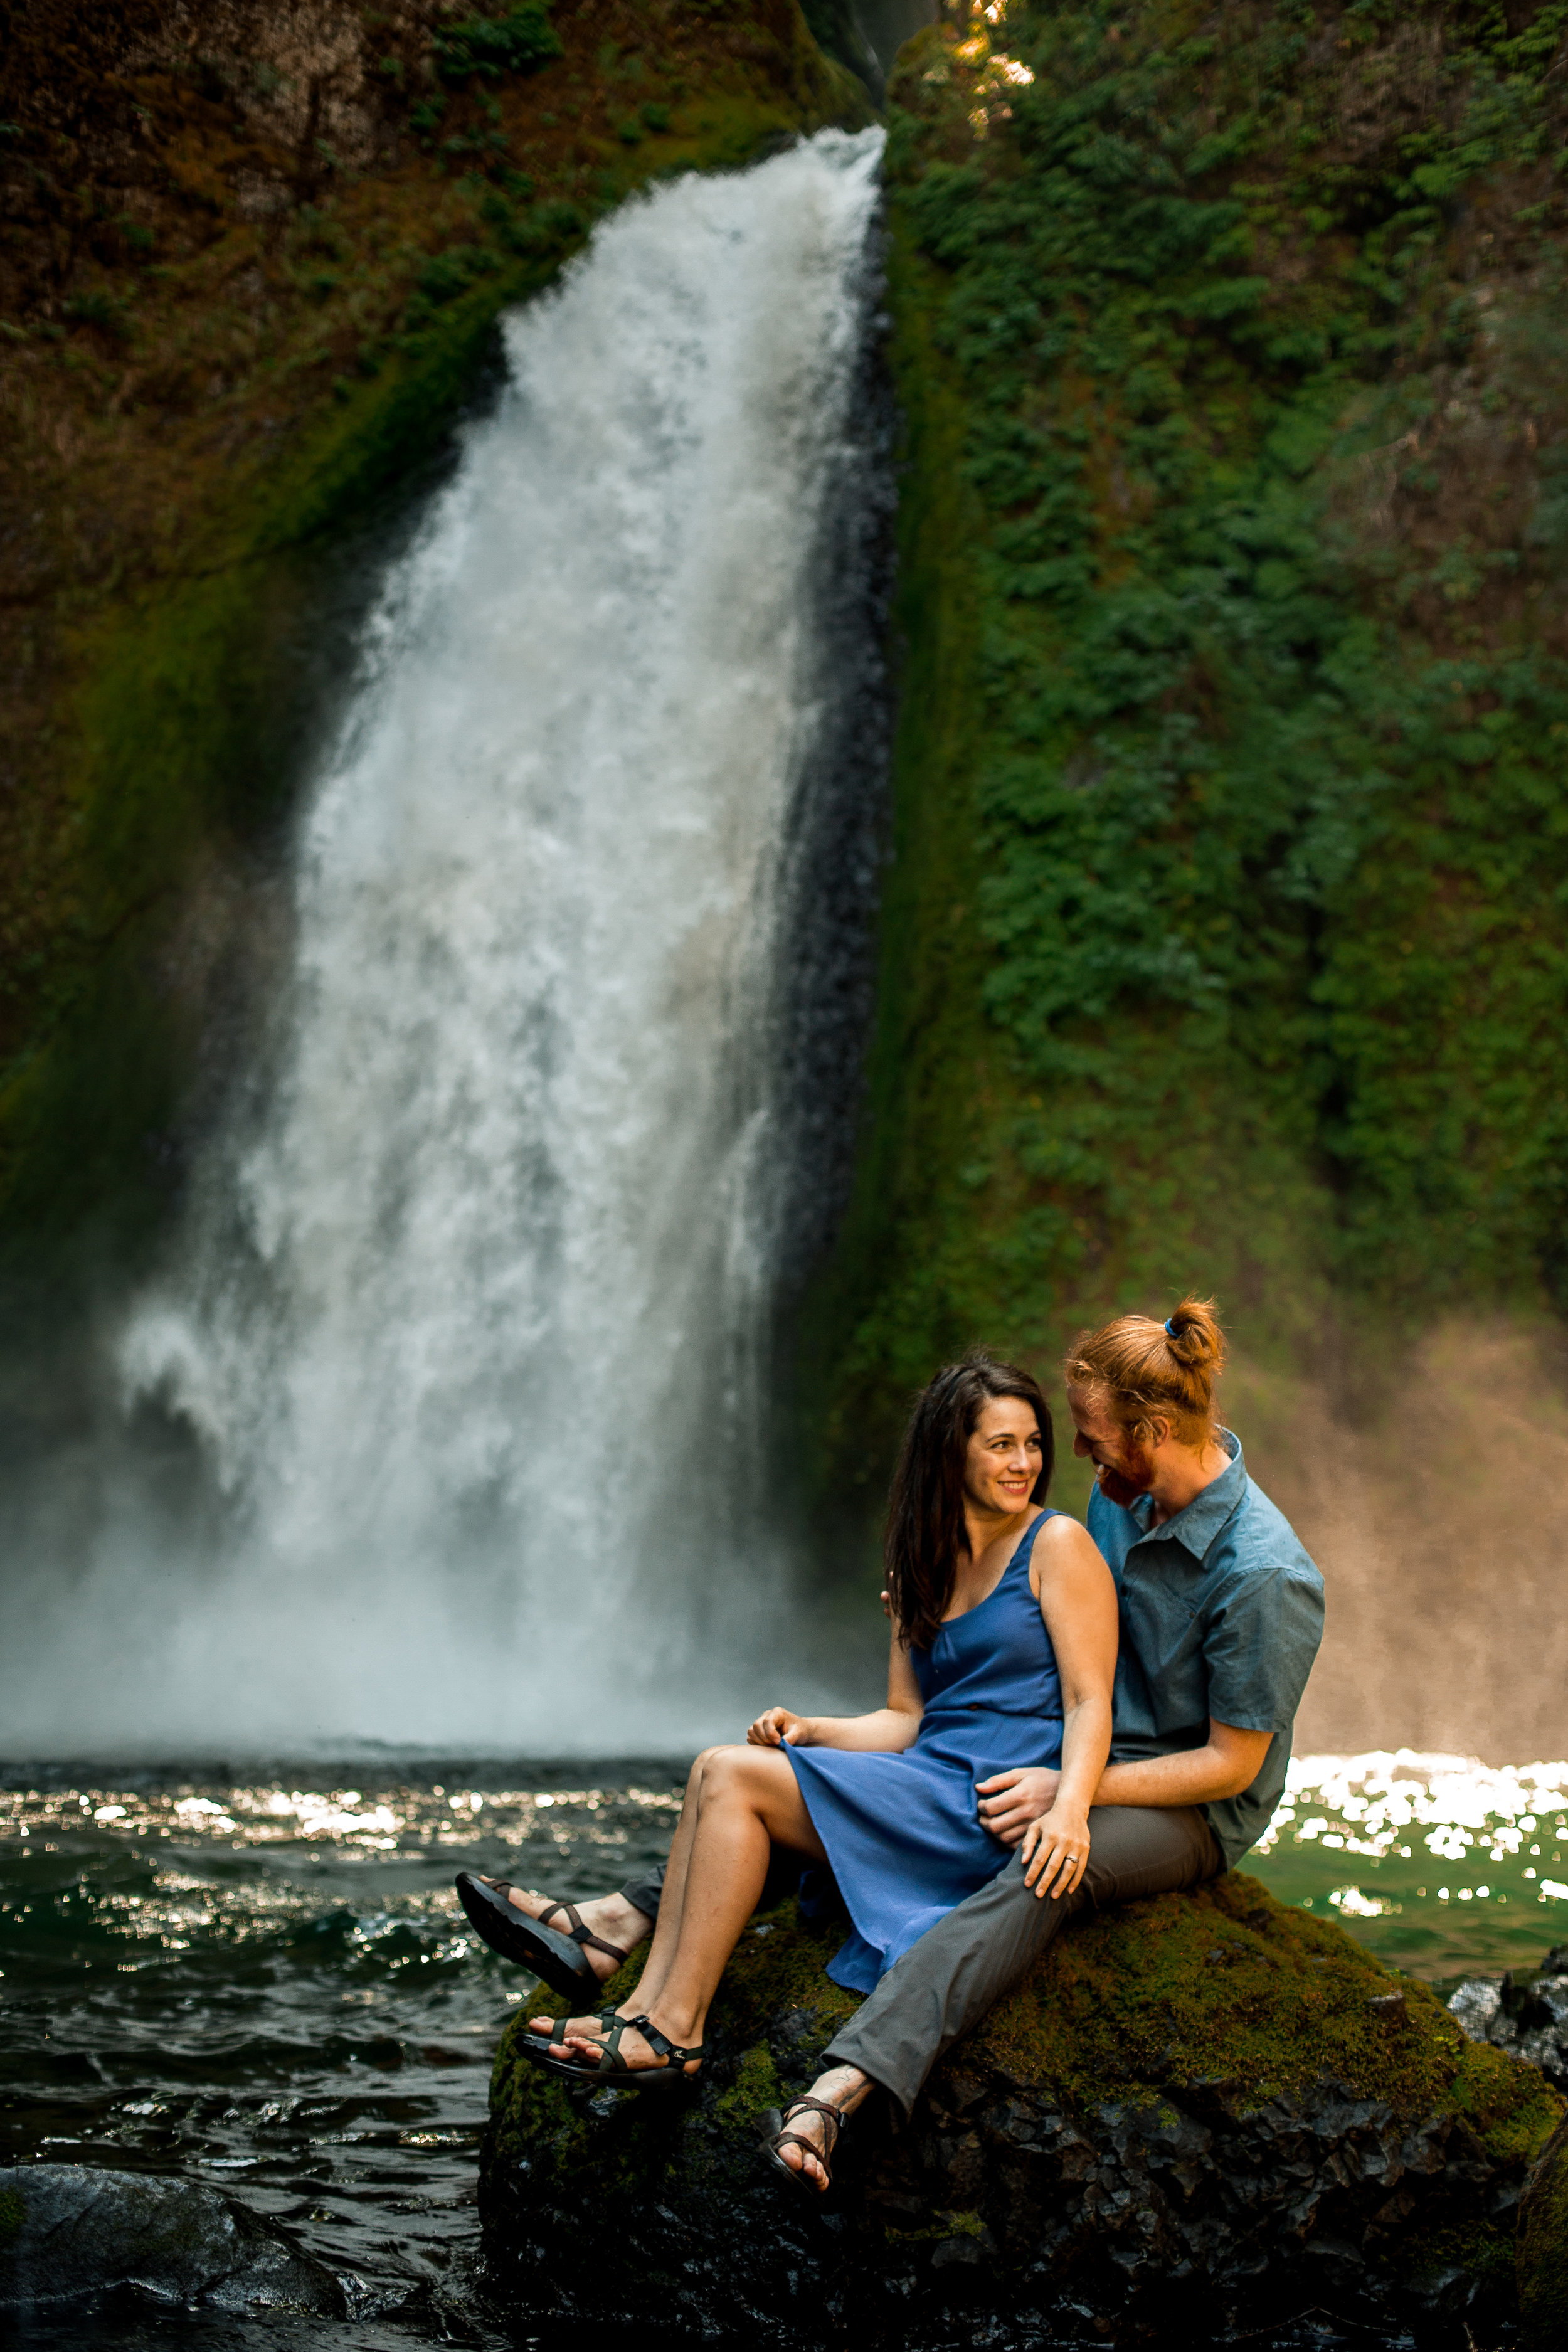 nicole-daacke-photography-wahclella-falls-waterfall-engagement-session-portland-engagement-photographer-columbia-river-gorge-oregon-elopement-photographer-26.jpg